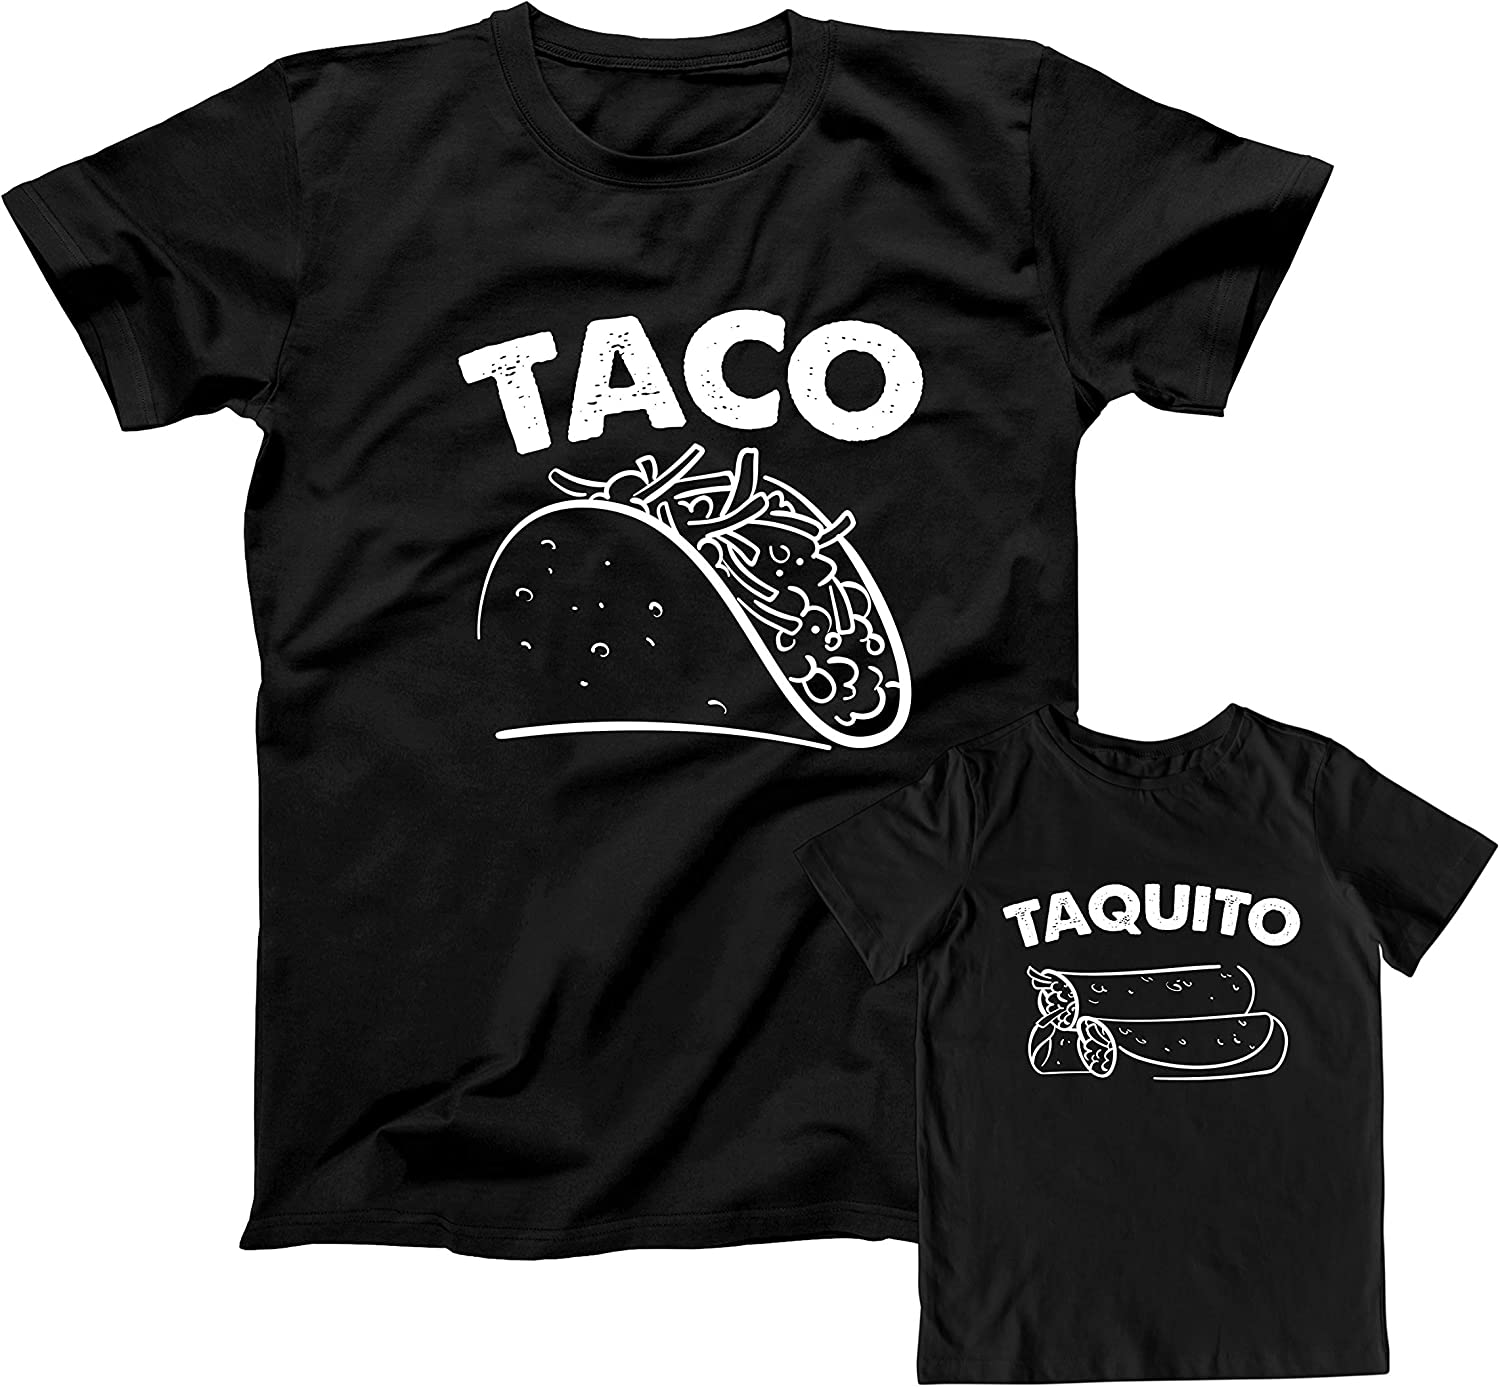 Teepinch Taco and Taquito Matching Family T-Shirt Sets for Father and Son Daddy Child Gifts TEP-977-978